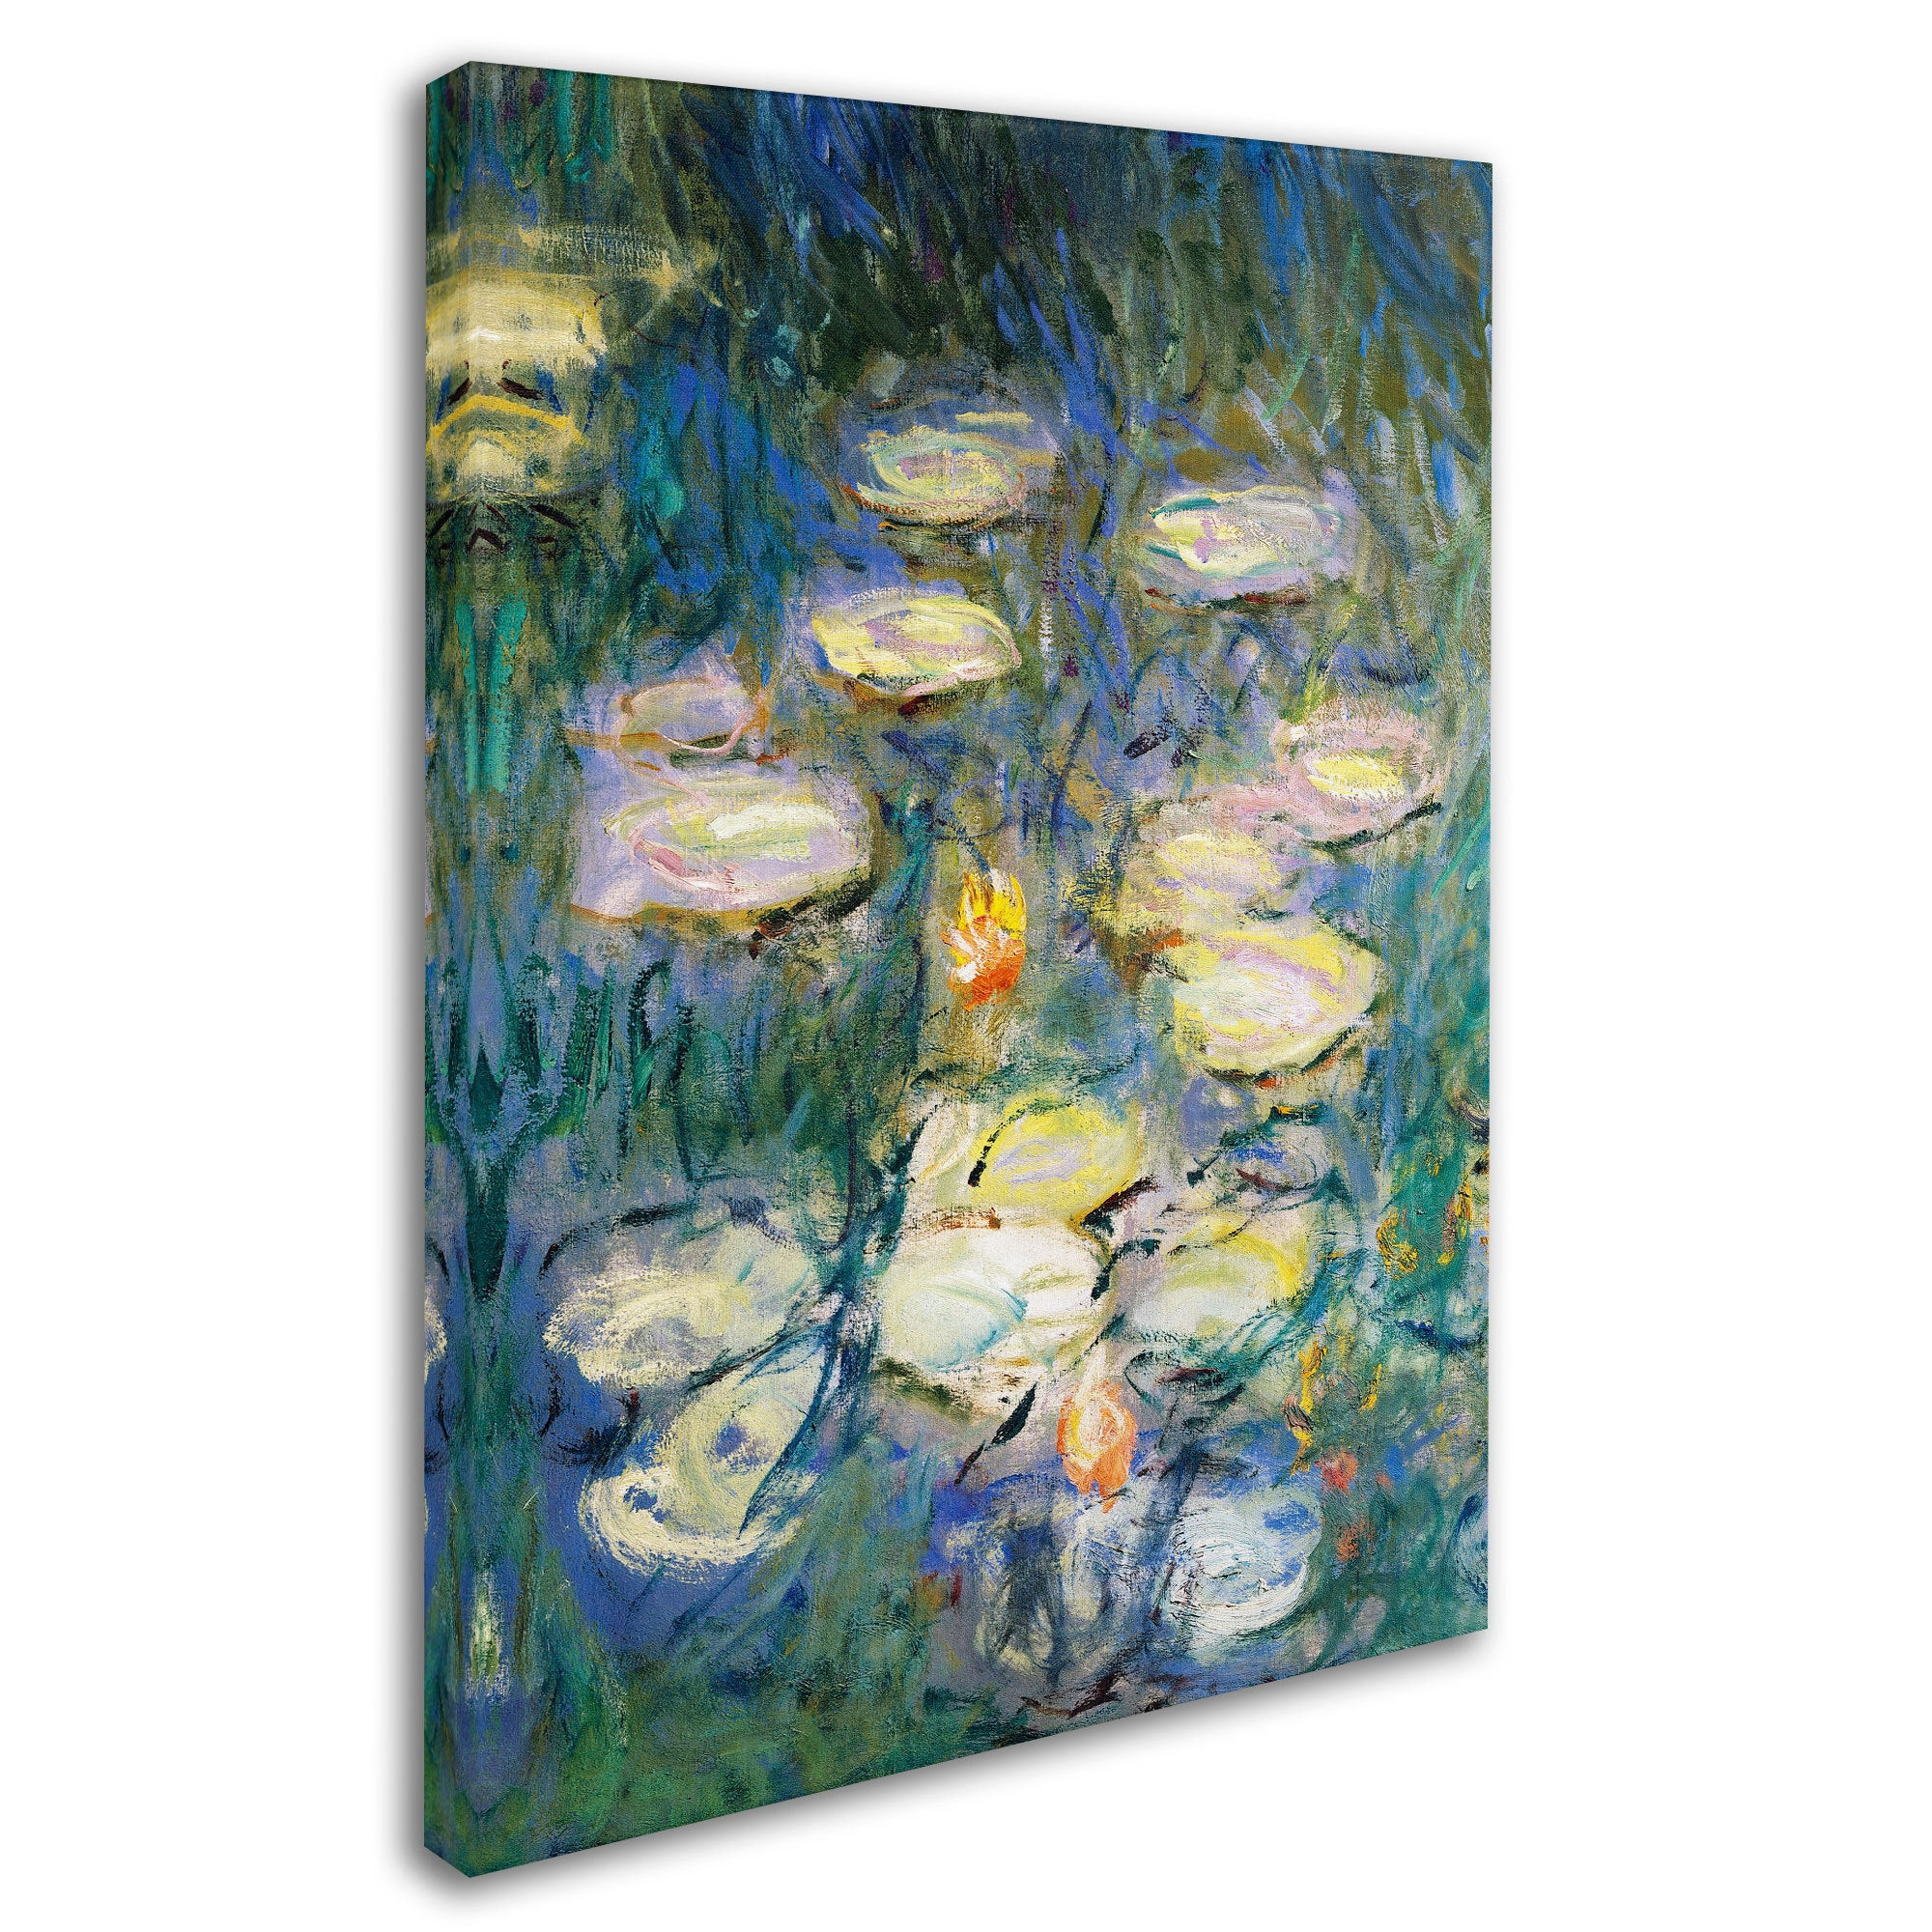 Water Lilies III 1840-1926 Artwork by Claude Monet 14 by 19-Inch Canvas Wall Art